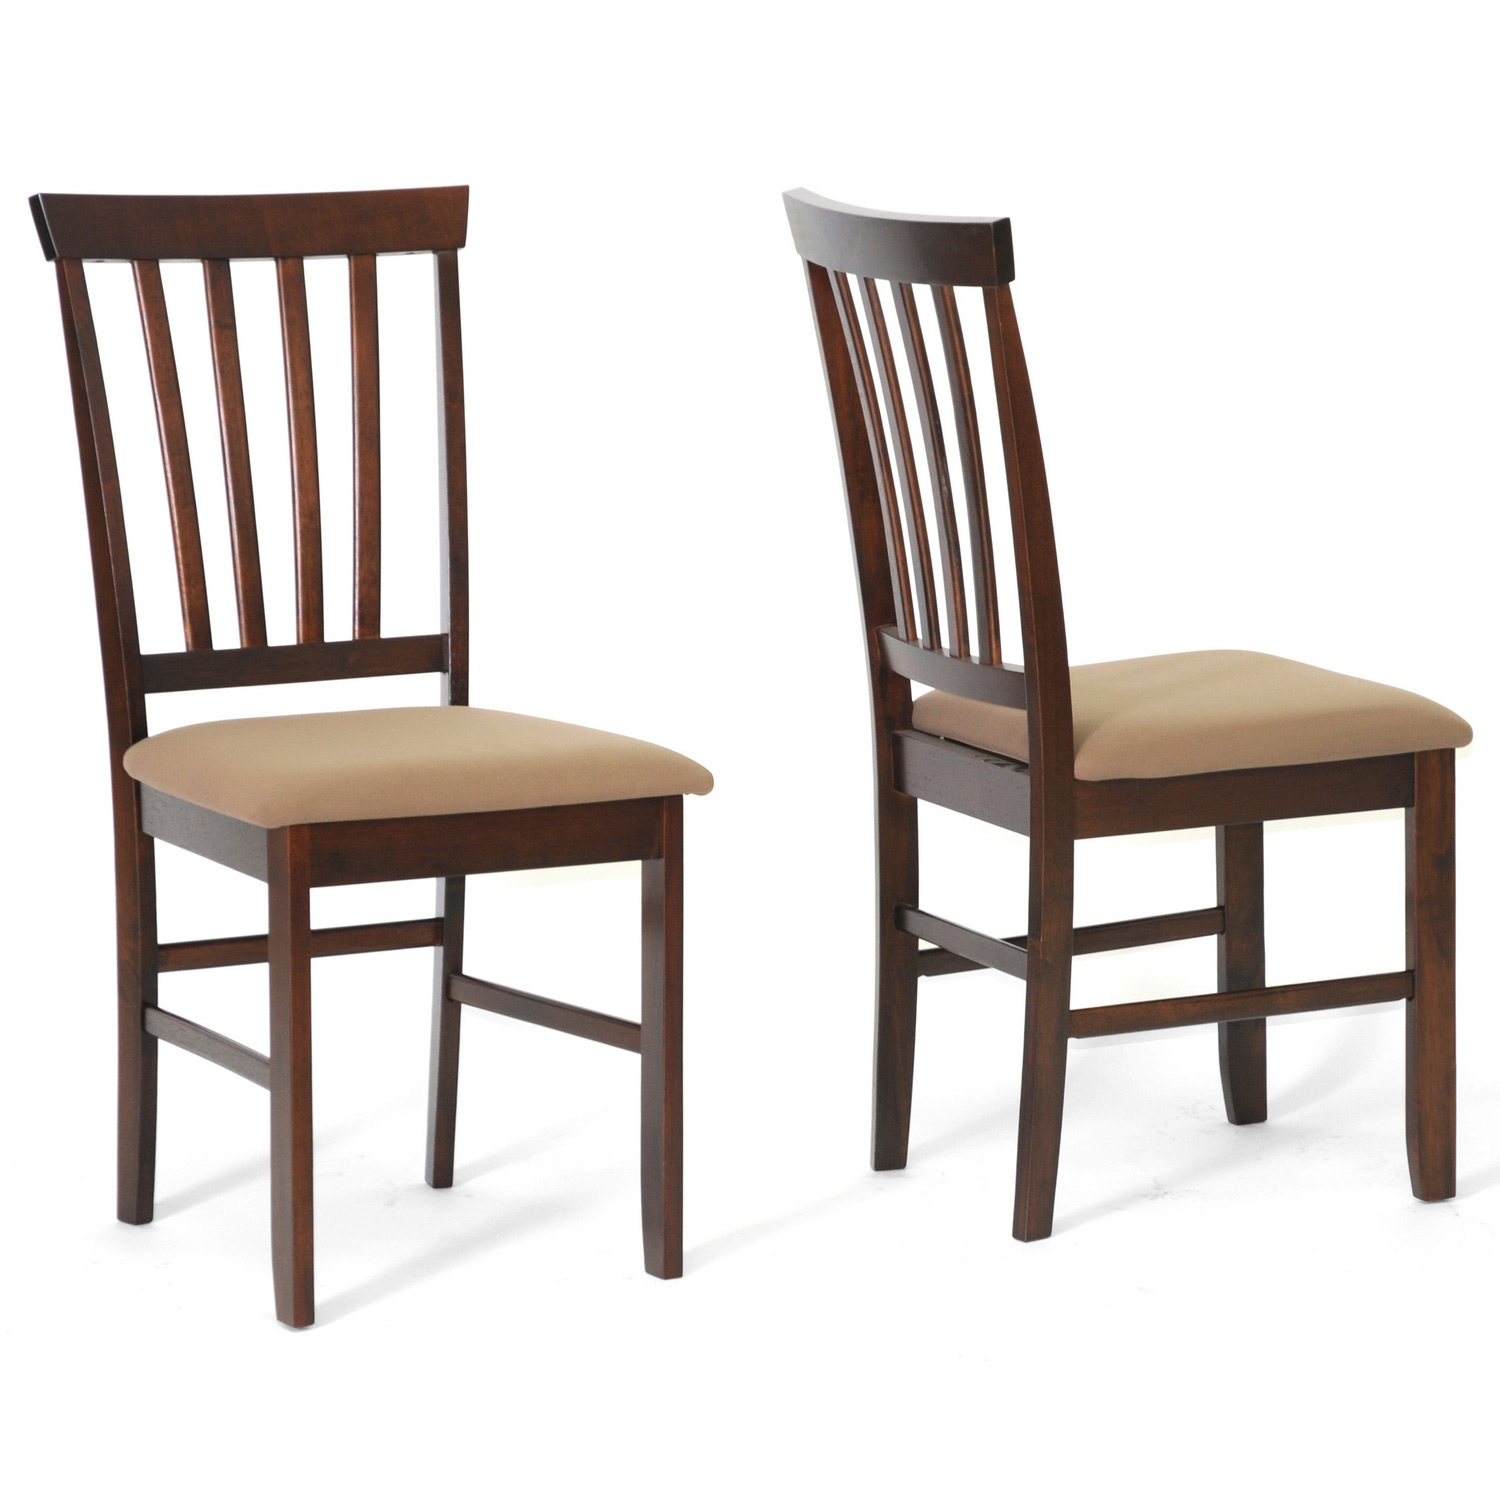 Tiffany brown wood modern dining chairs set of 2 by for Dining designer chairs